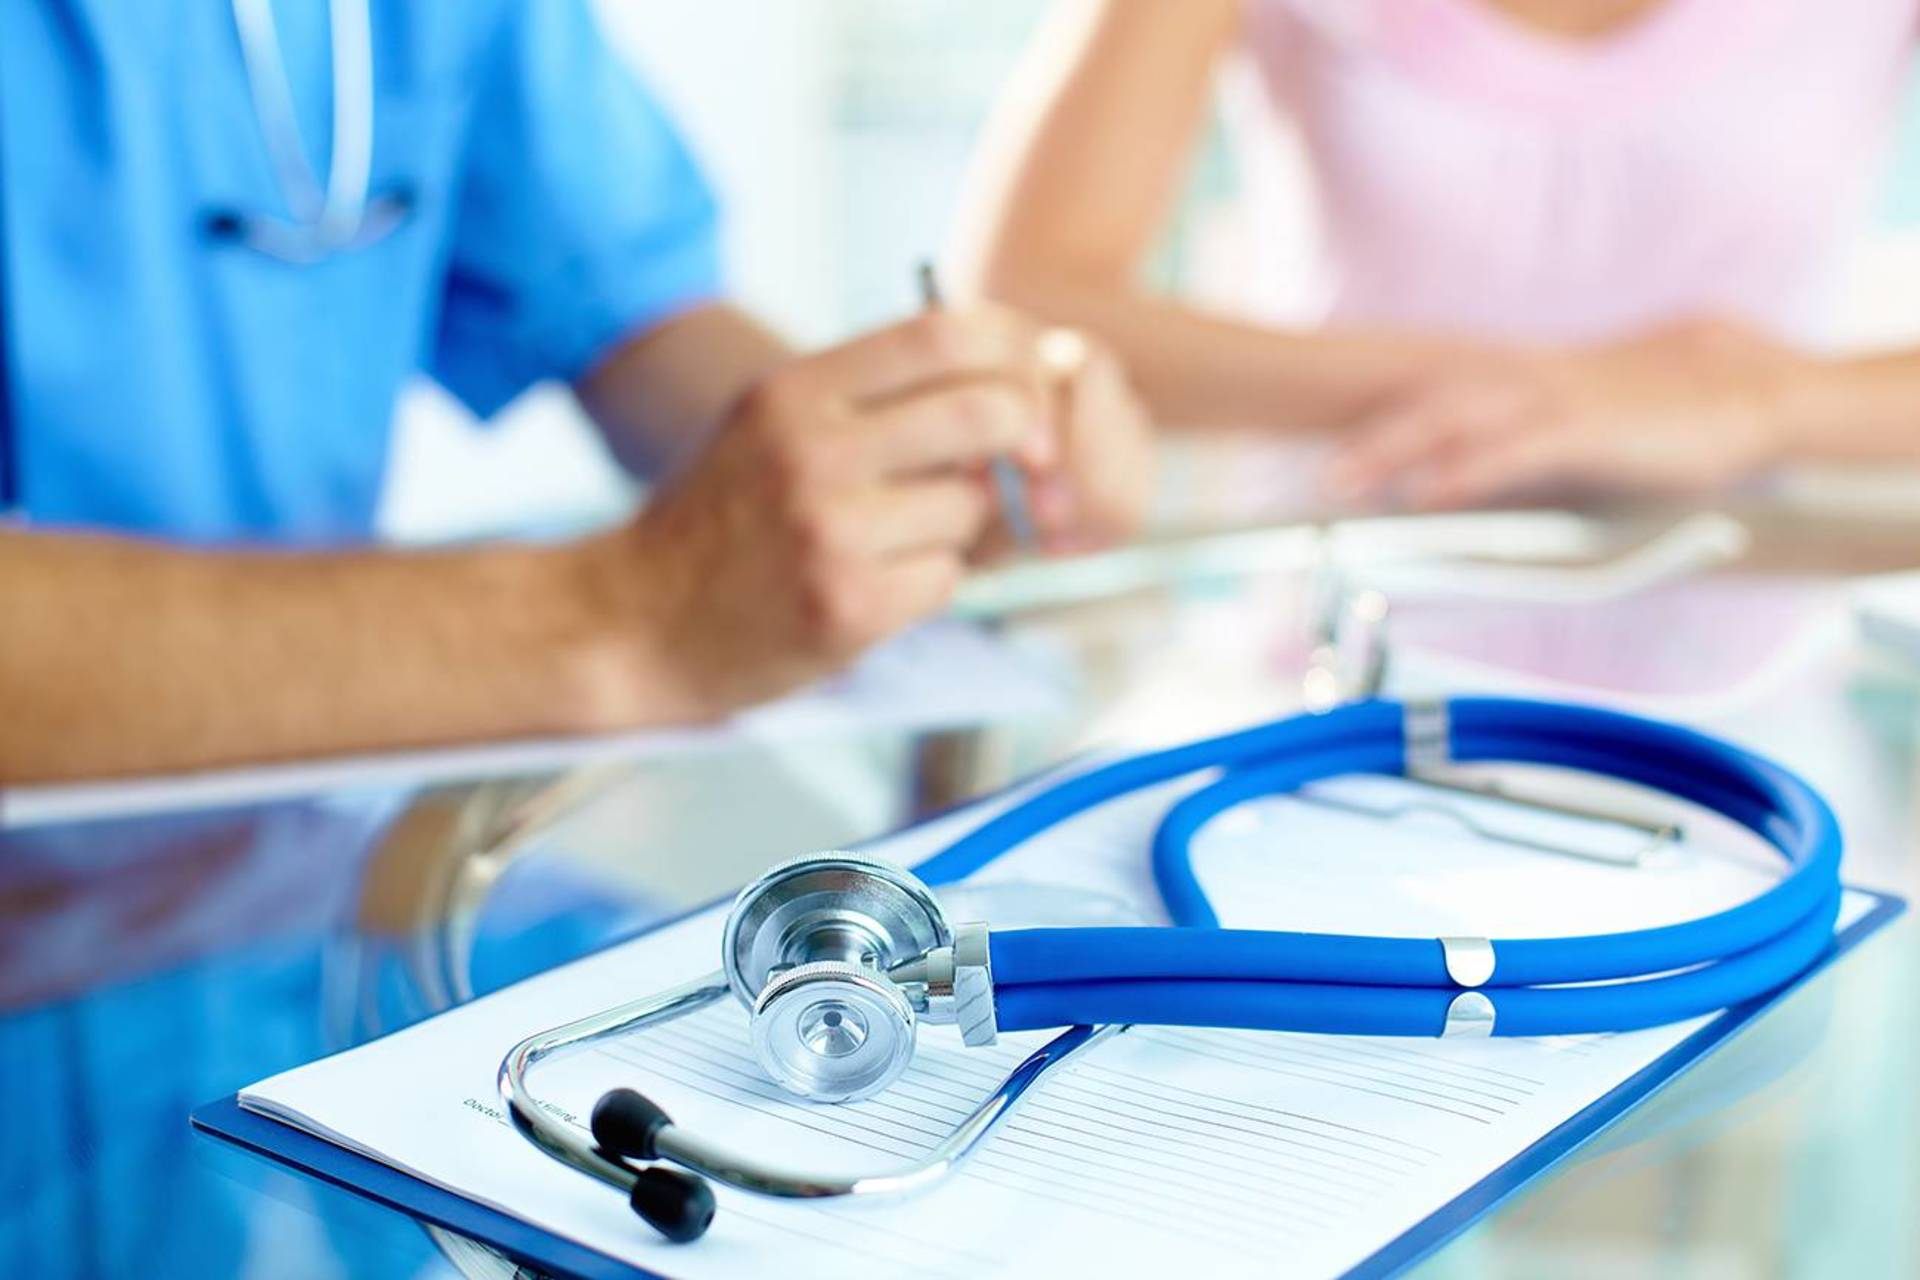 What Do You Need to Know About Filing a Legal Medical Negligence Compensation Claim? image